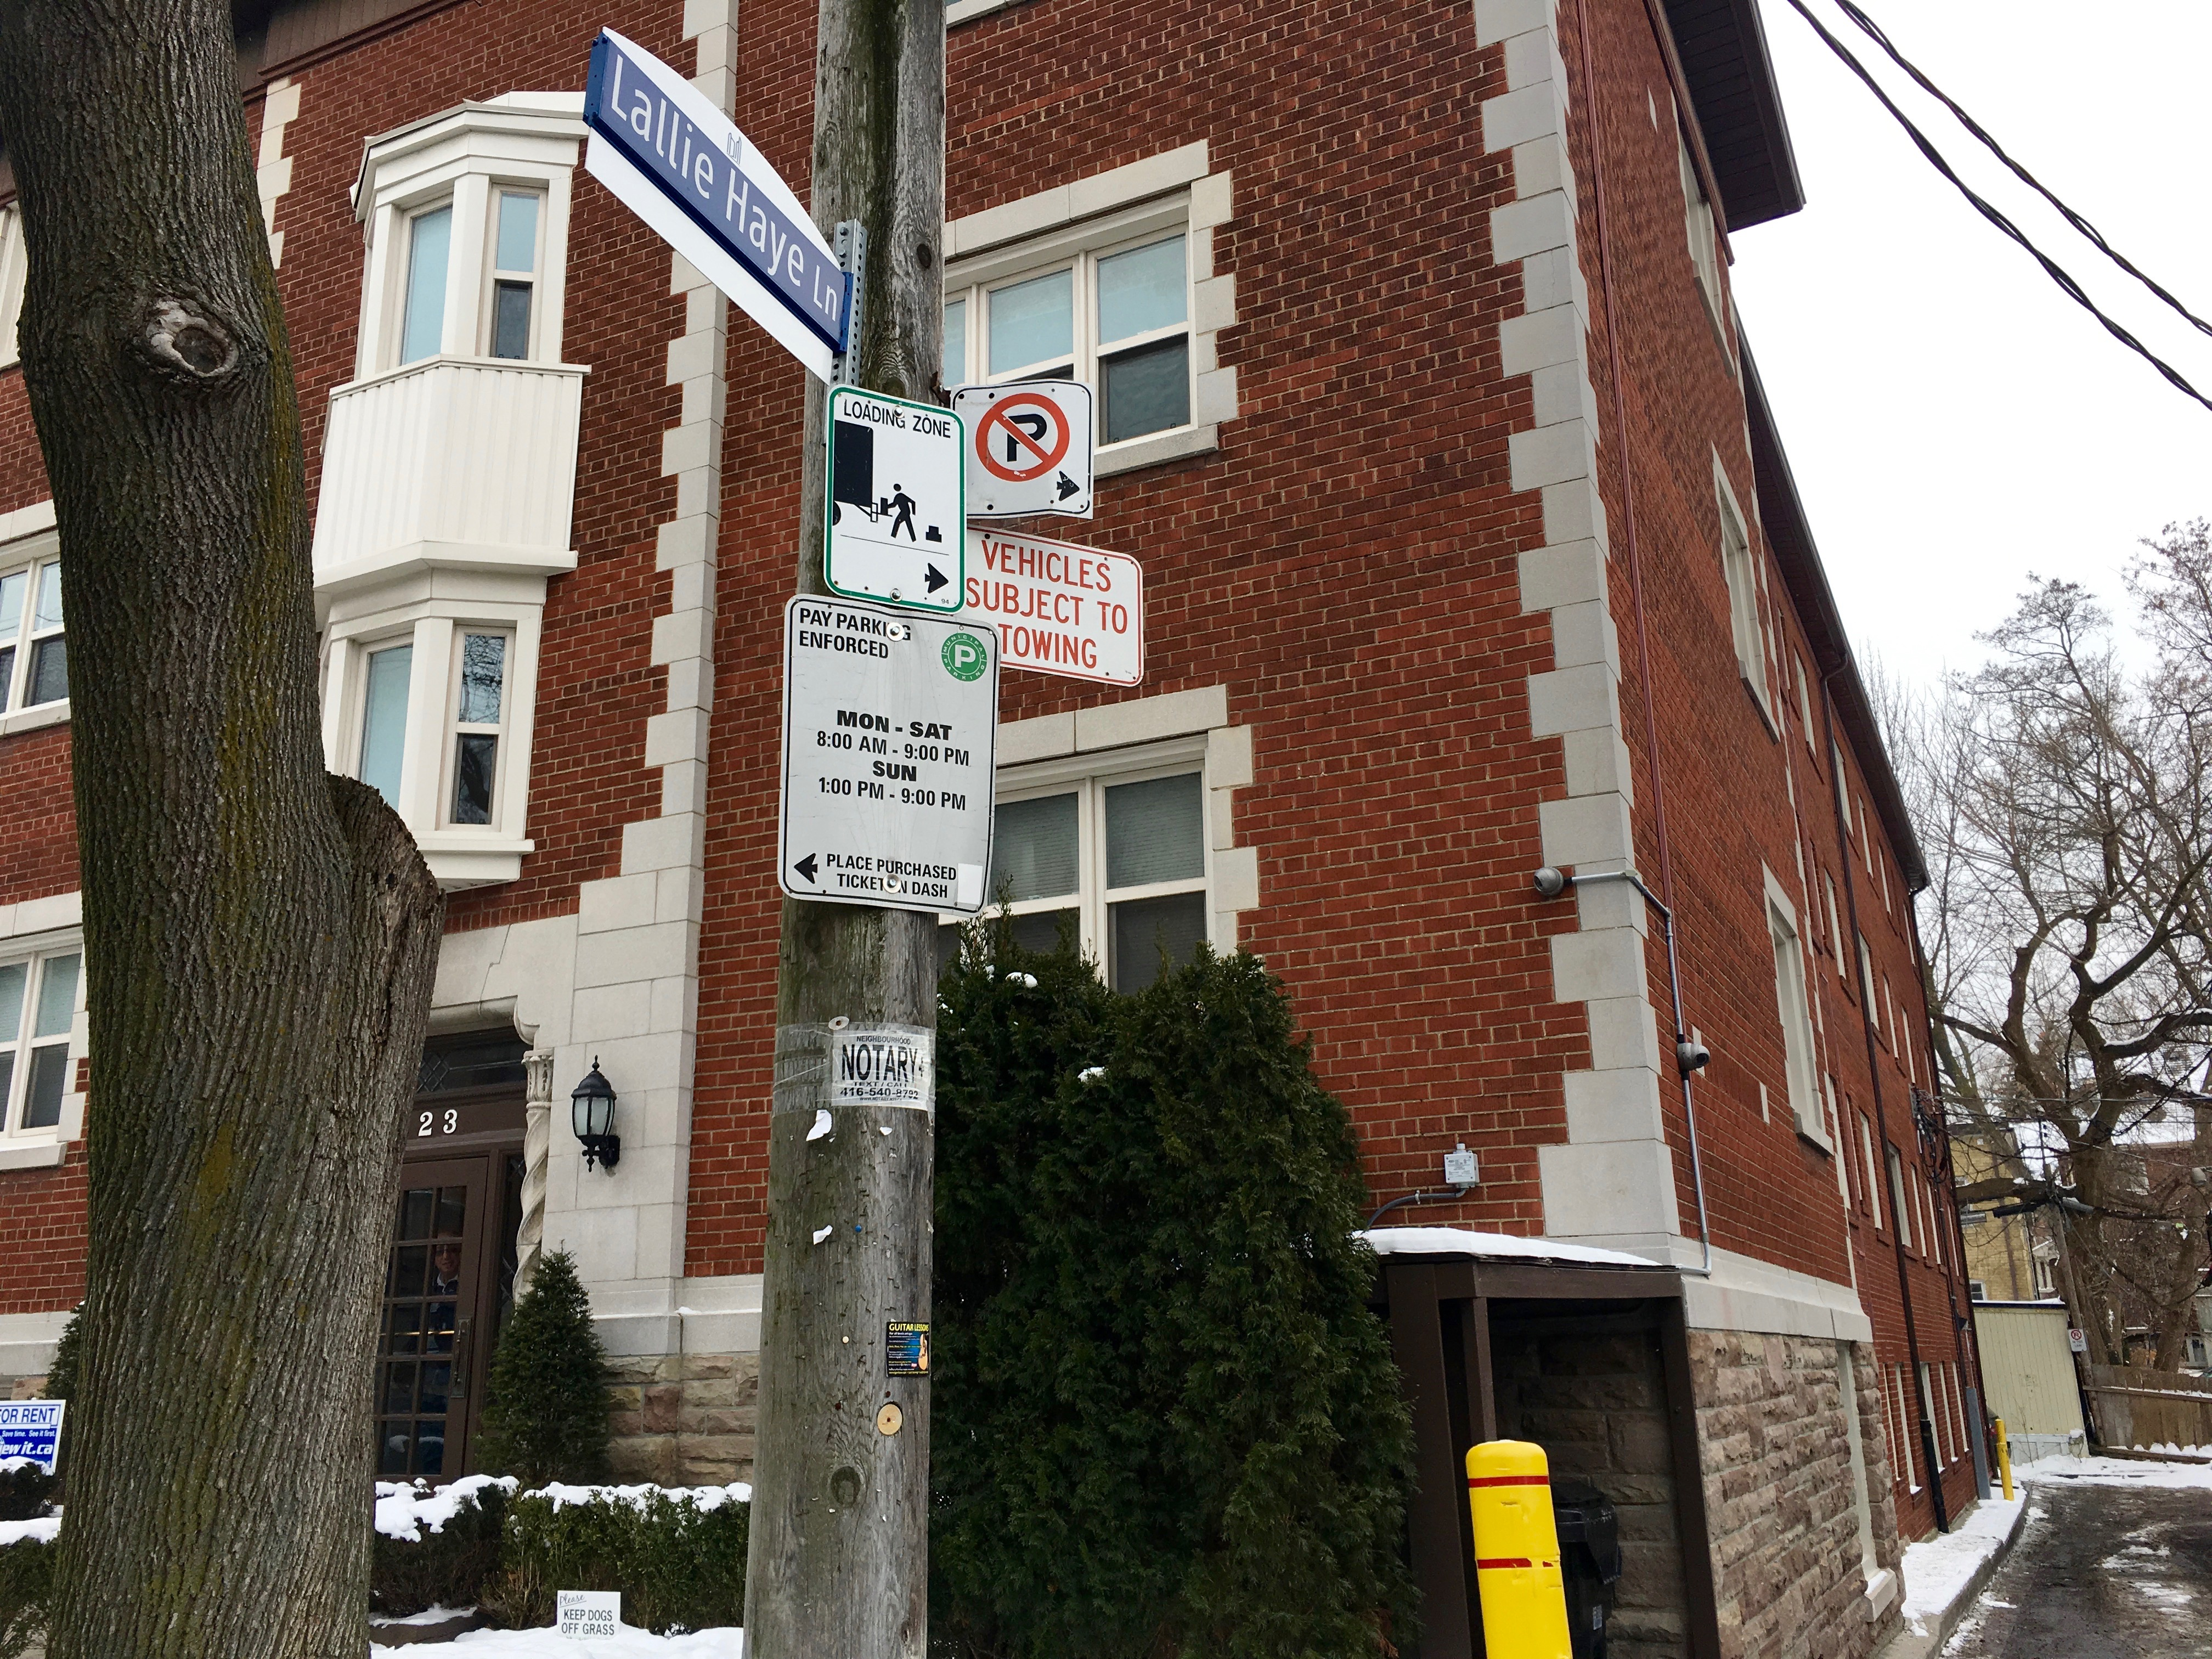 10:59 a.m., Jan. 18, 2018. Lallie Haye Lane was named in 2015 after Lallie Haye, in honour of her long history of work in the neighbourhood.